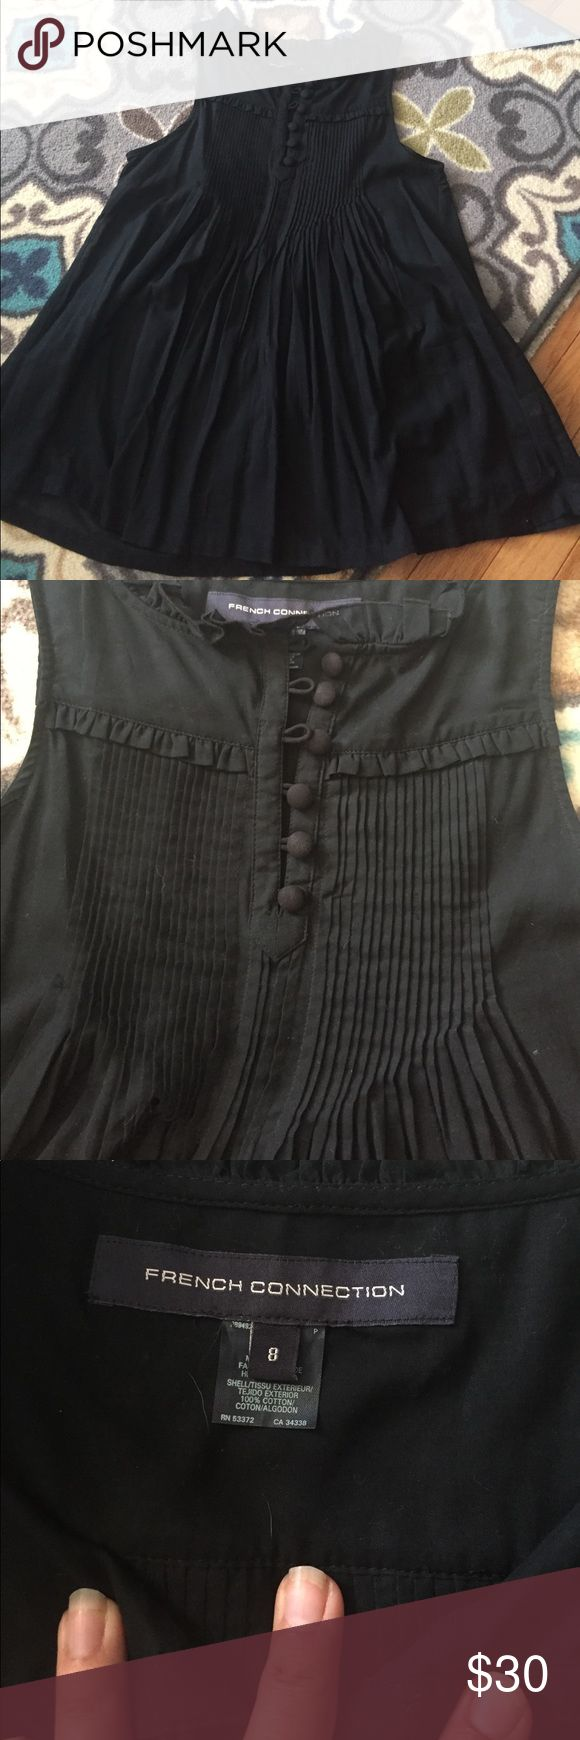 French Connection Blouse EUC French Connection sleeveless blouse. Cute pleating details on front and back. Buttons. Two front pockets. Sheer and longer length French Connection Tops Blouses